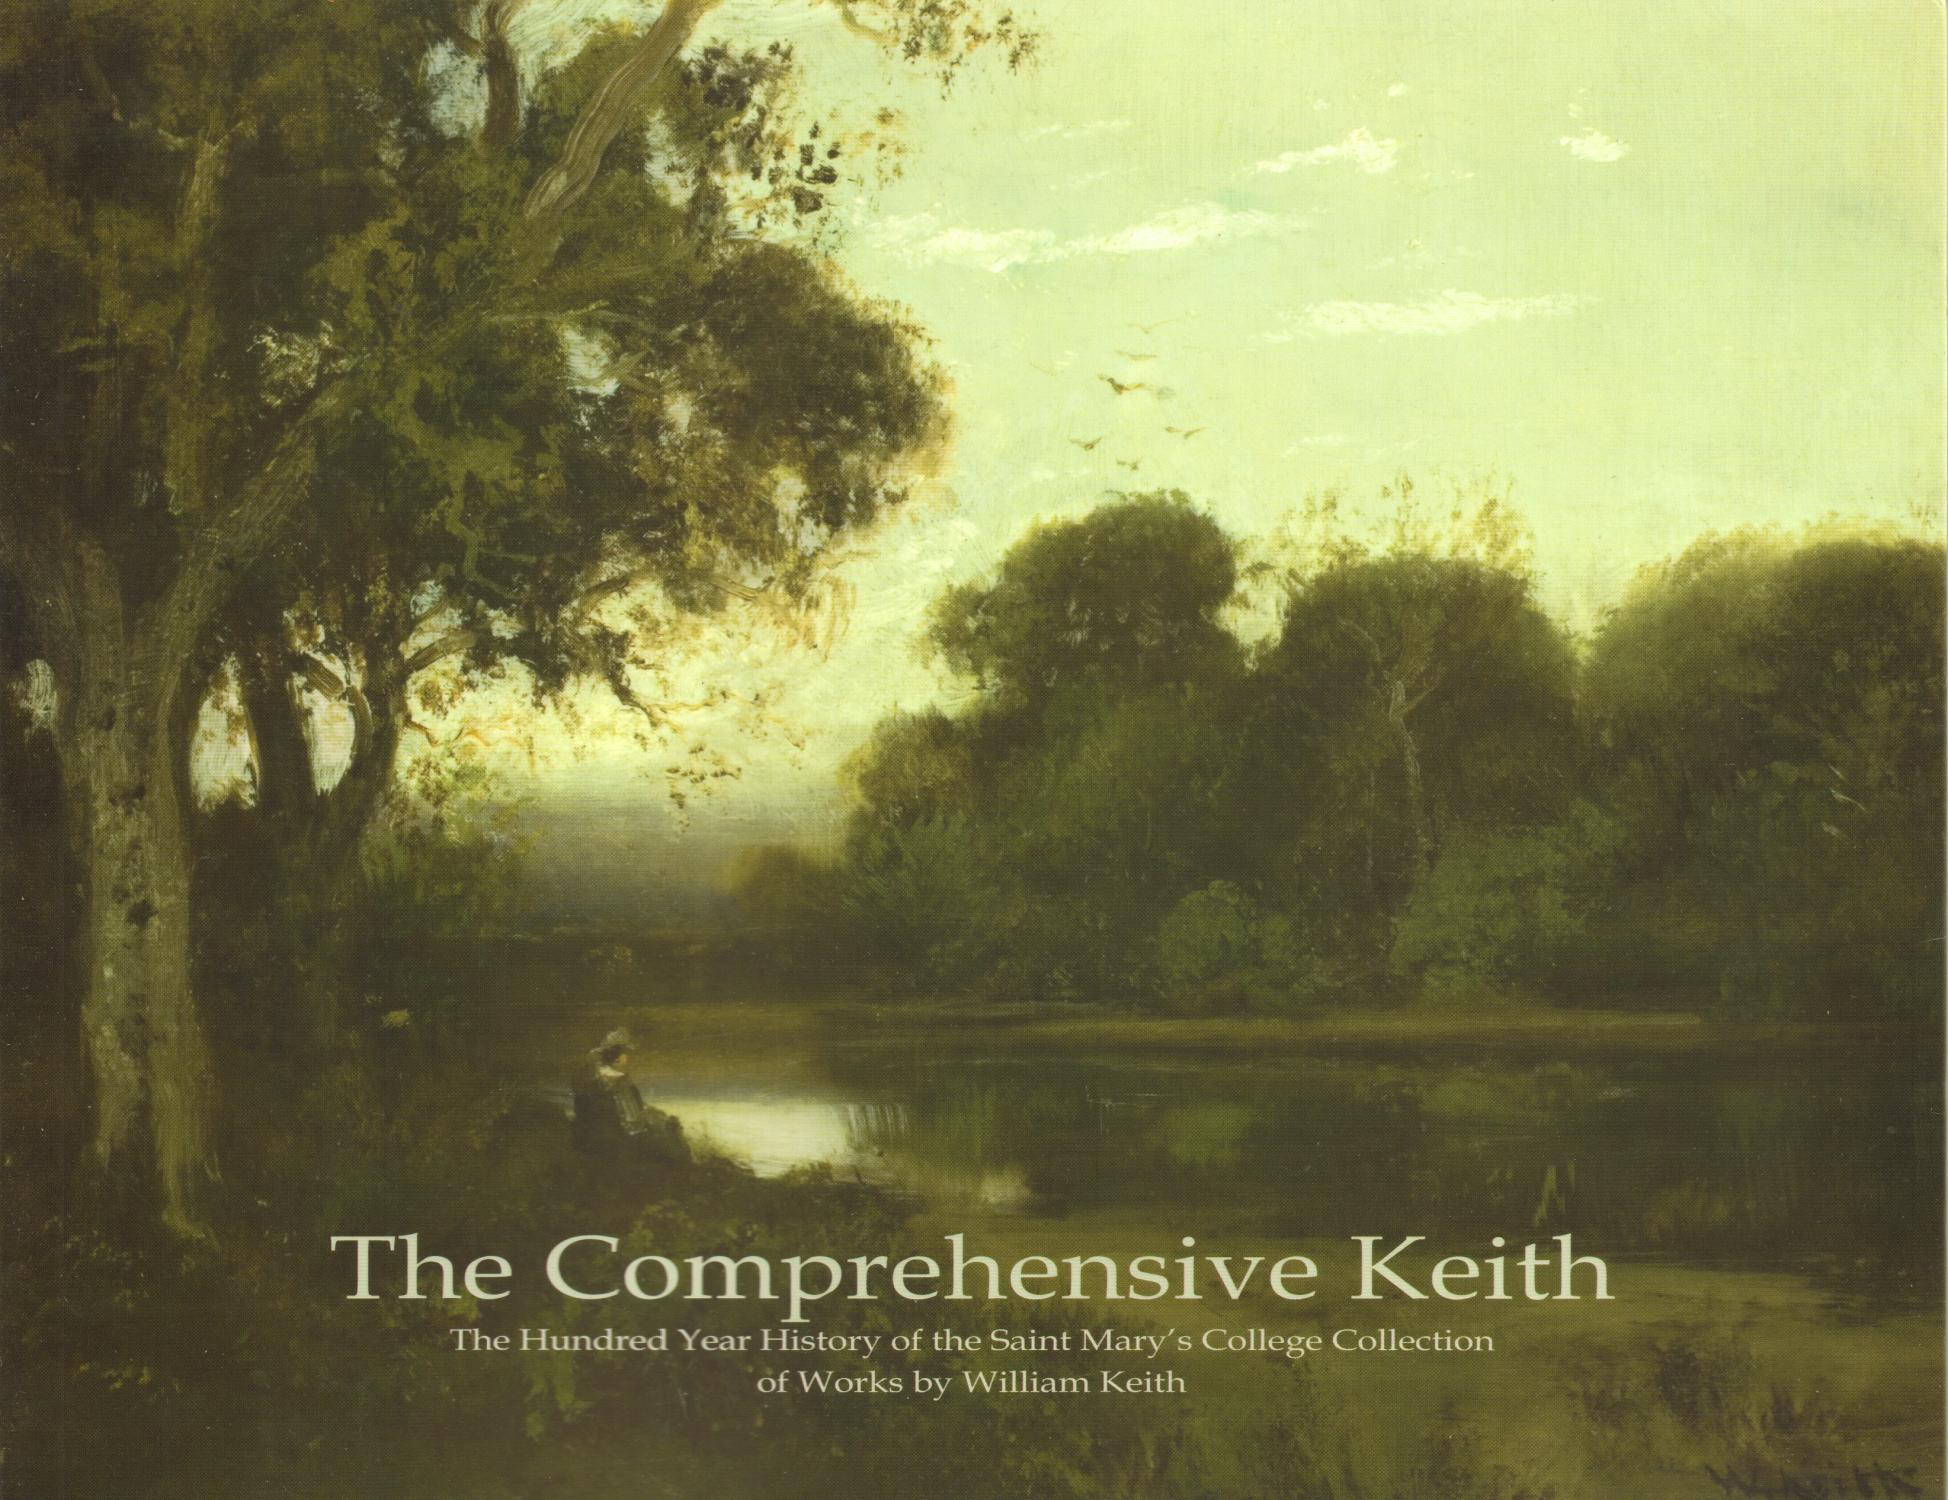 Comprehensive Keith: the Hundred Year History of the Saint Mary's College Collection of Works by William Keith Harrison, Alfred C. ; Jeanne McKee Rot